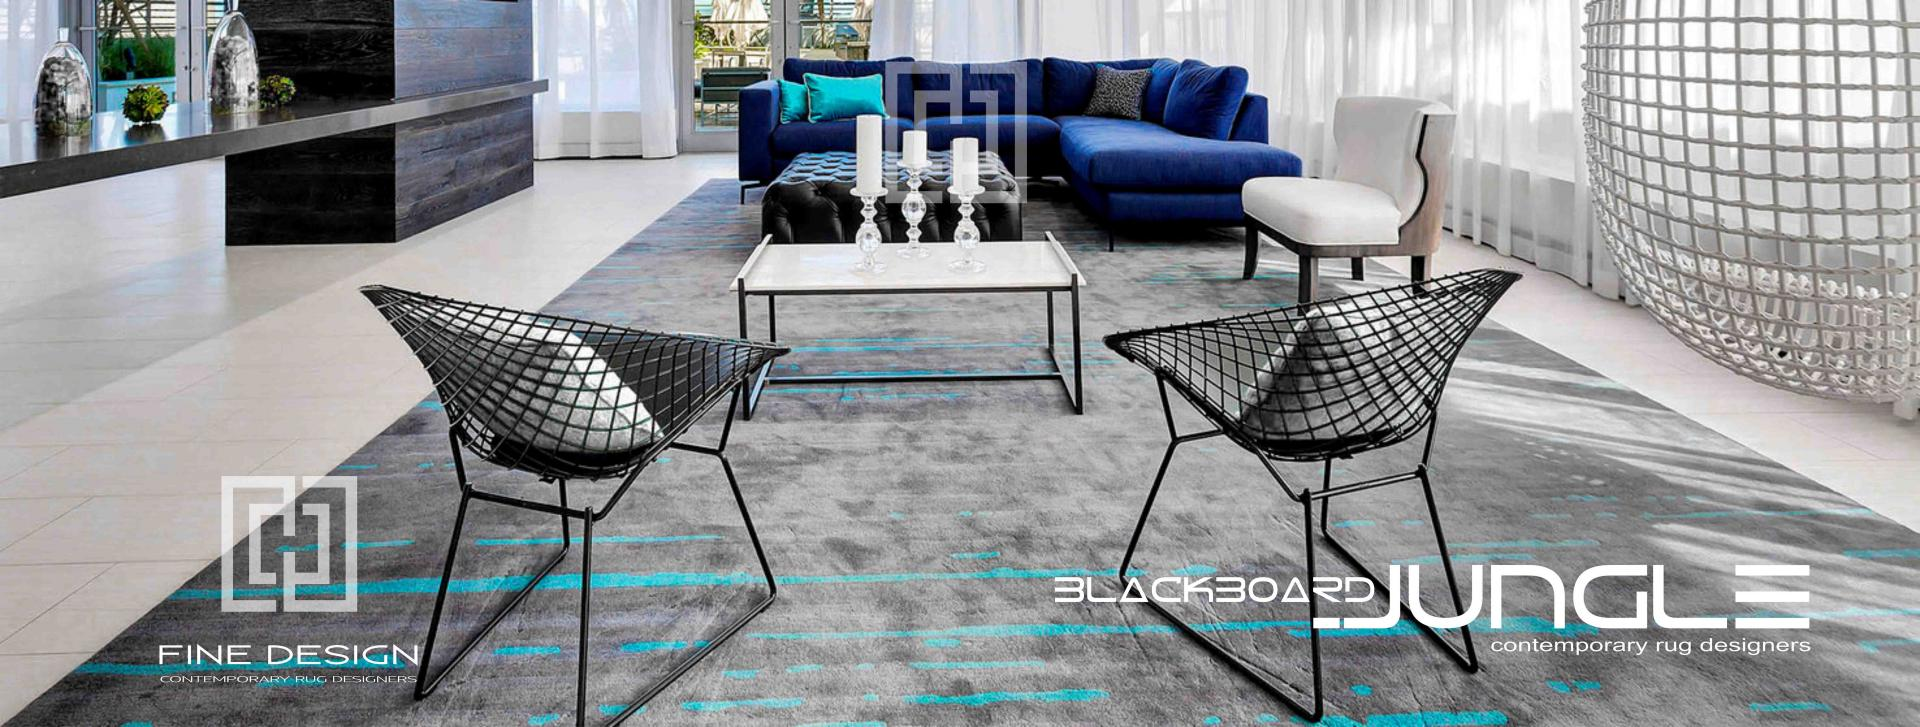 Modern_executive_apartment_Grey_and_turquoise_rug